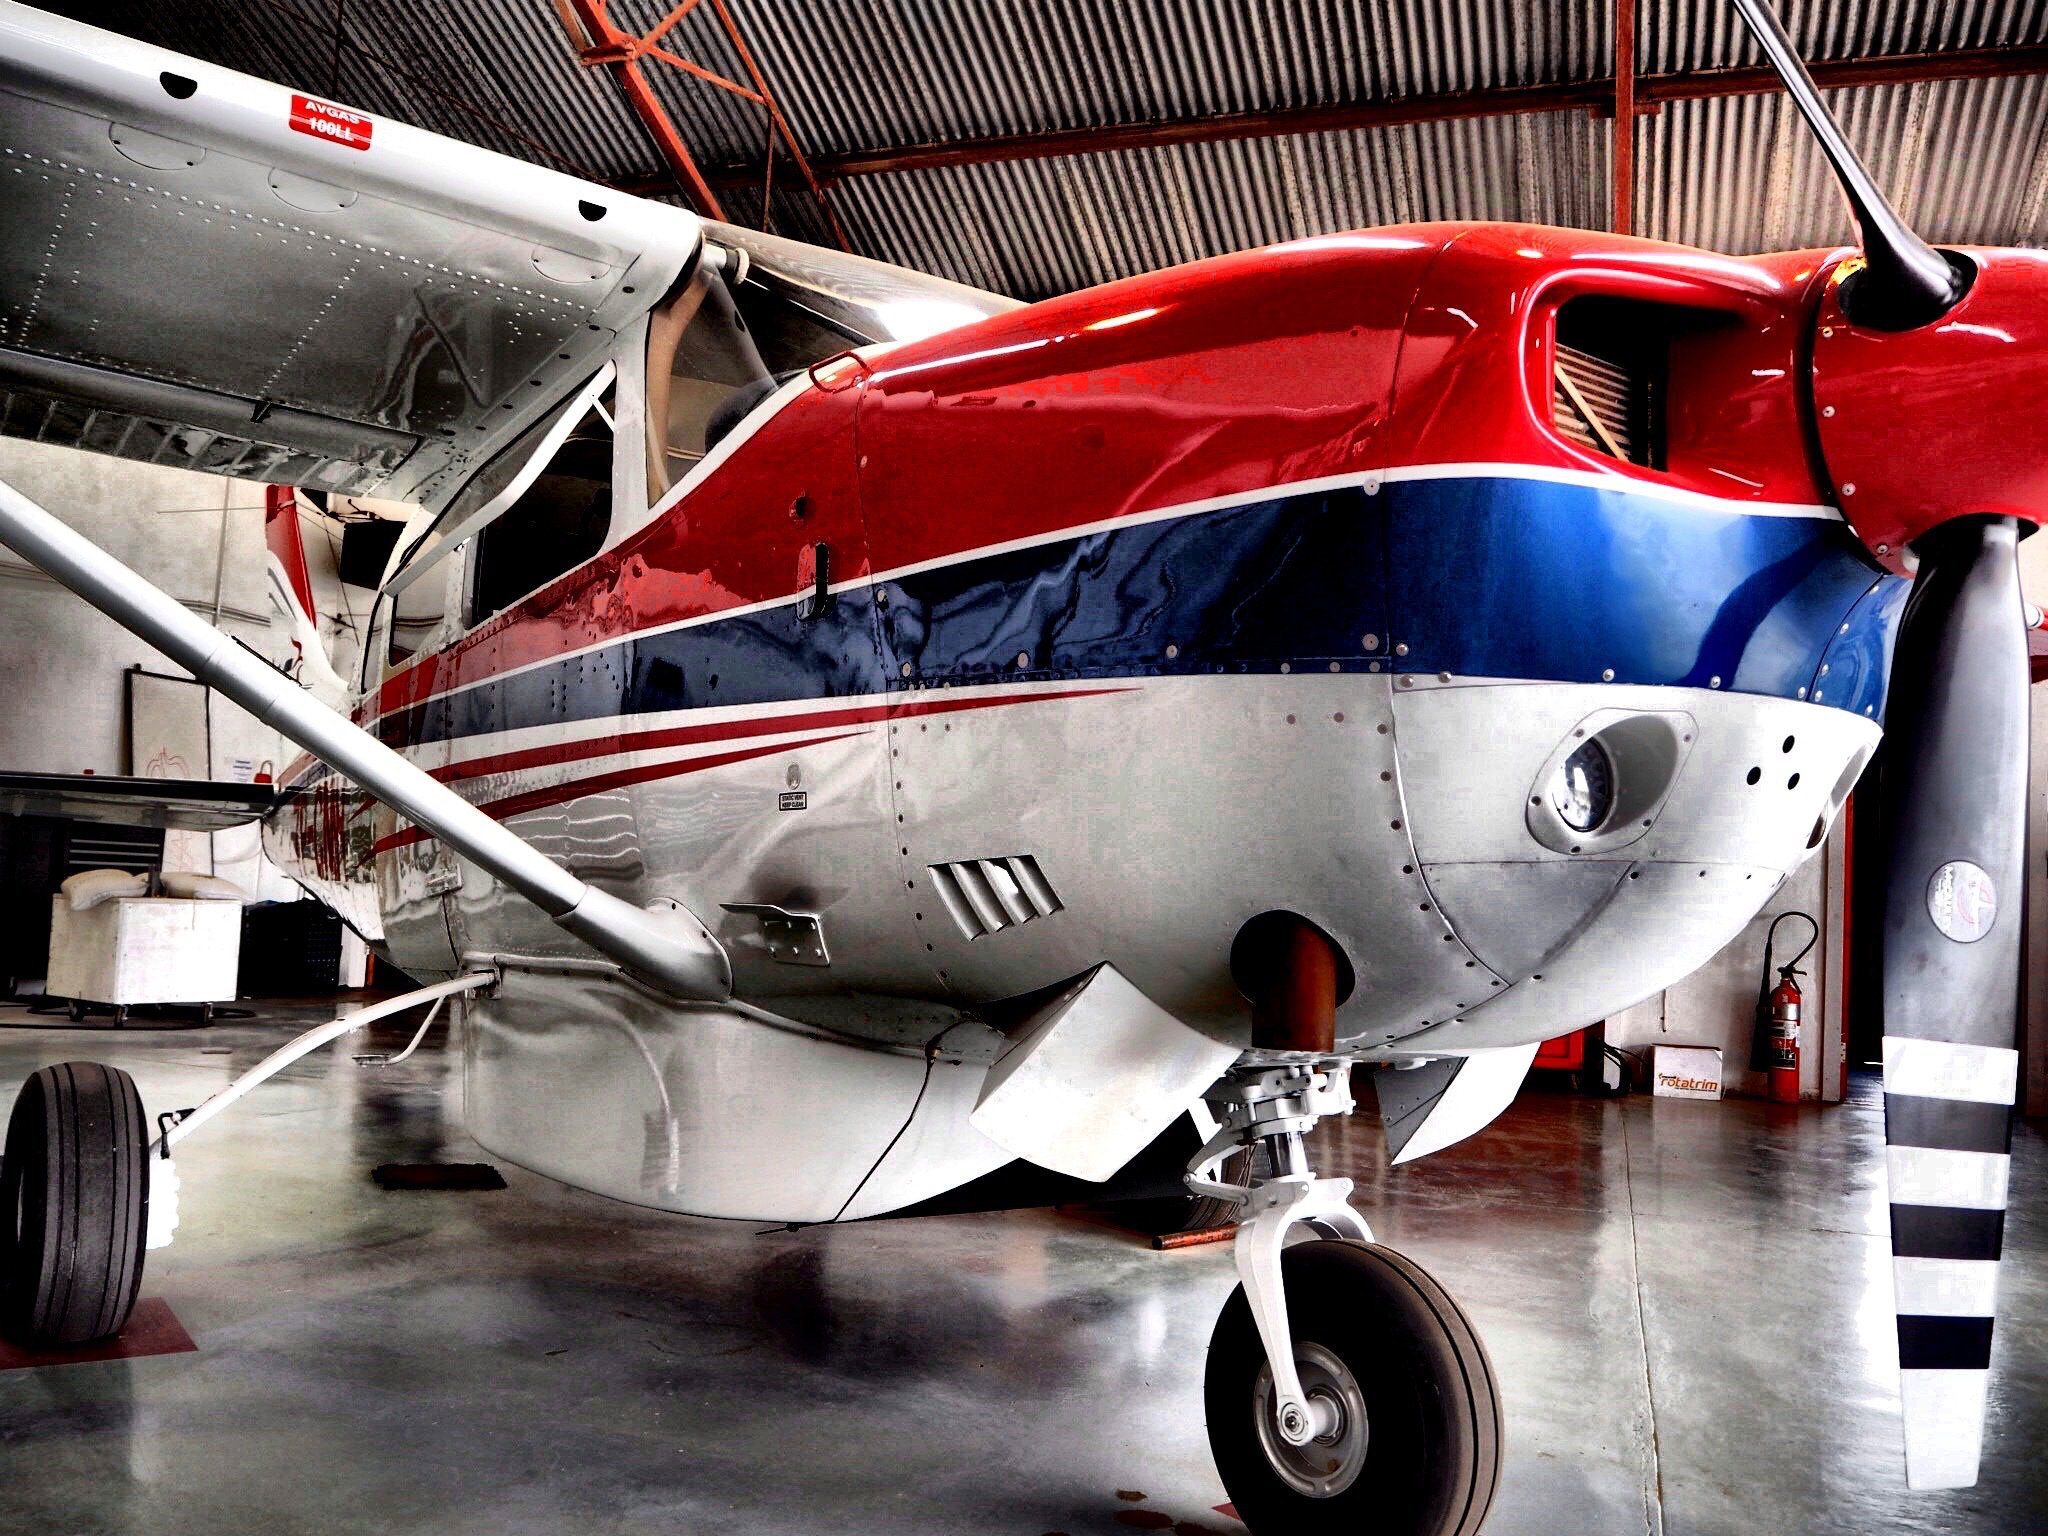 One of the planes at the MAF Lesotho hanger when we visited to do our interview